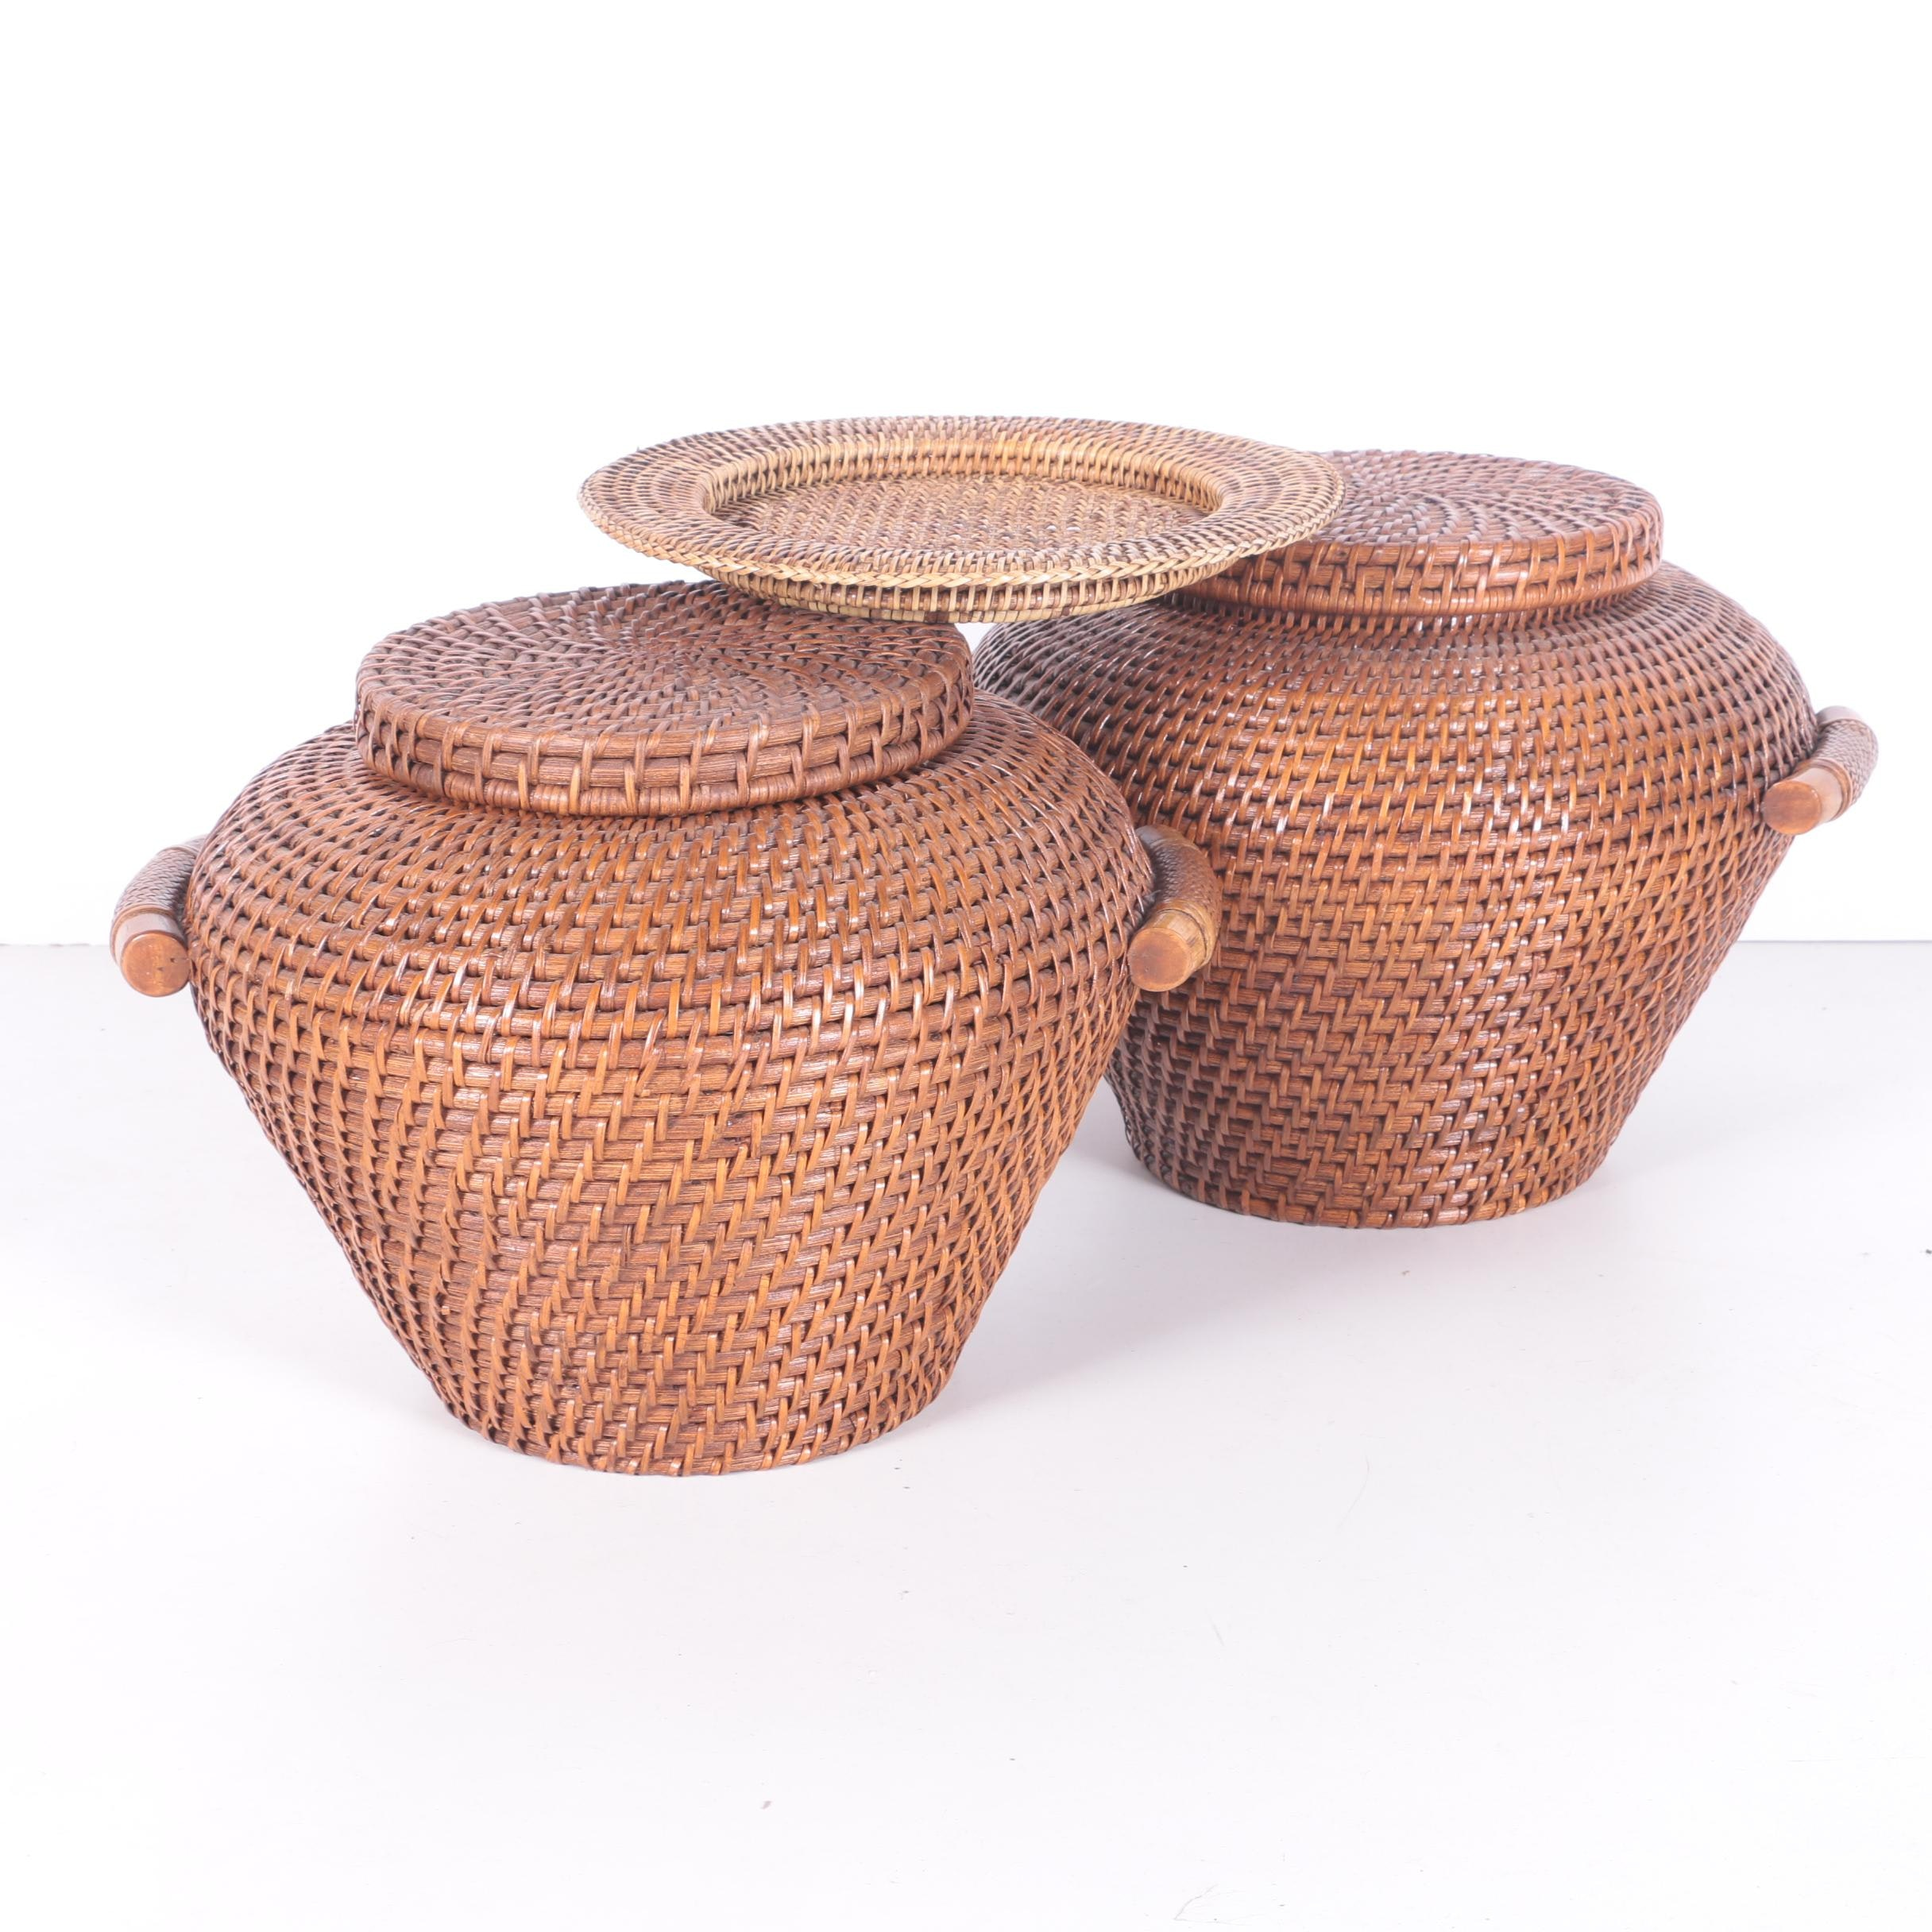 Lidded Baskets and Woven Tray